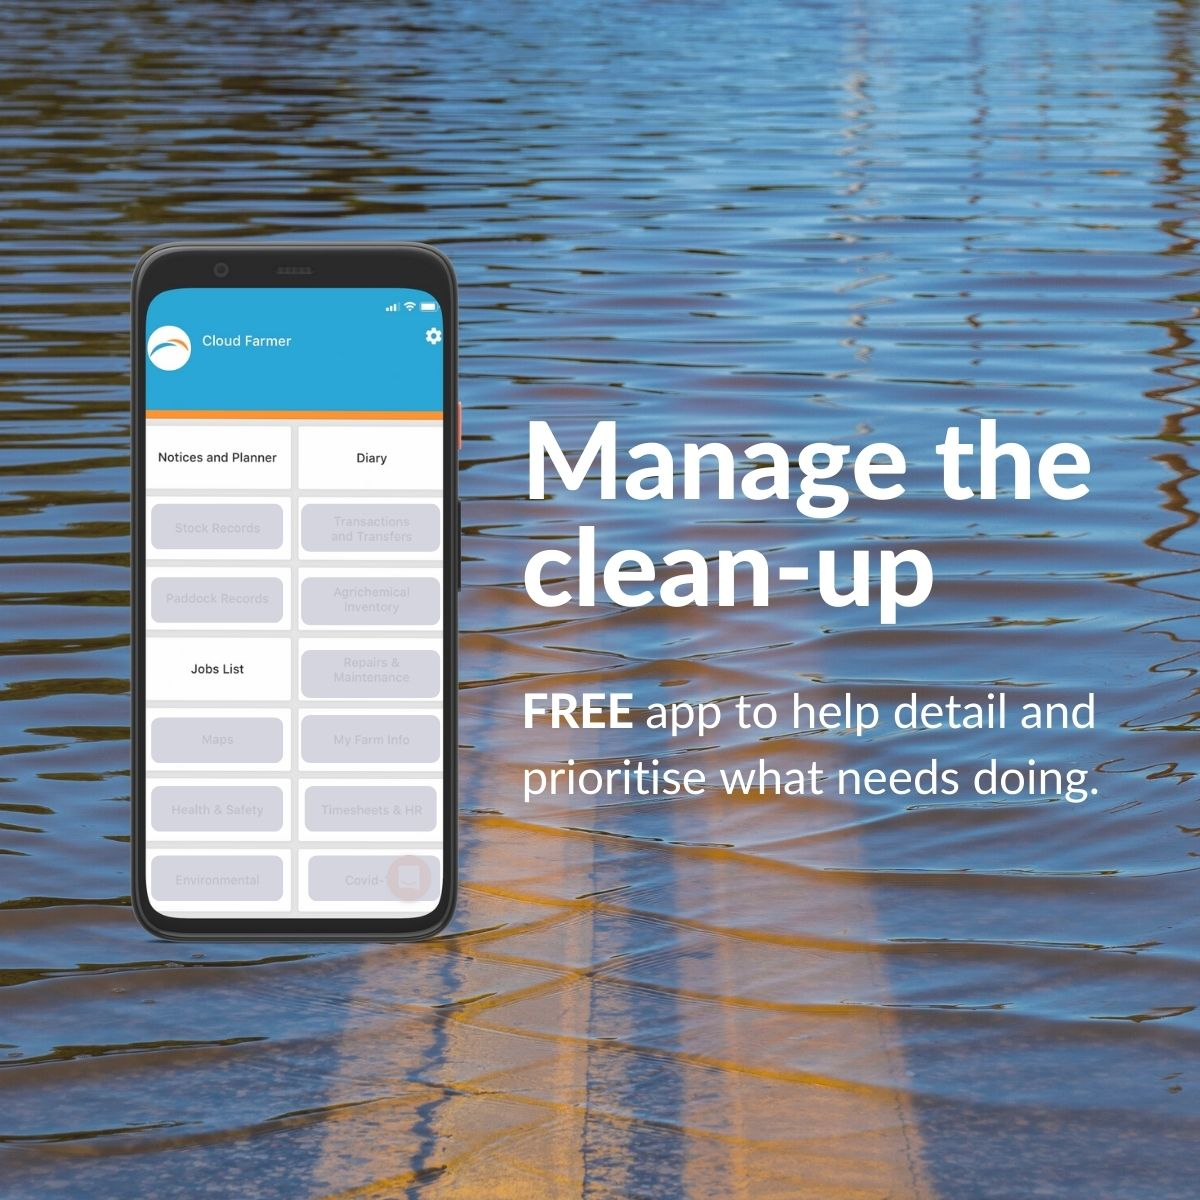 Manage the clean-up